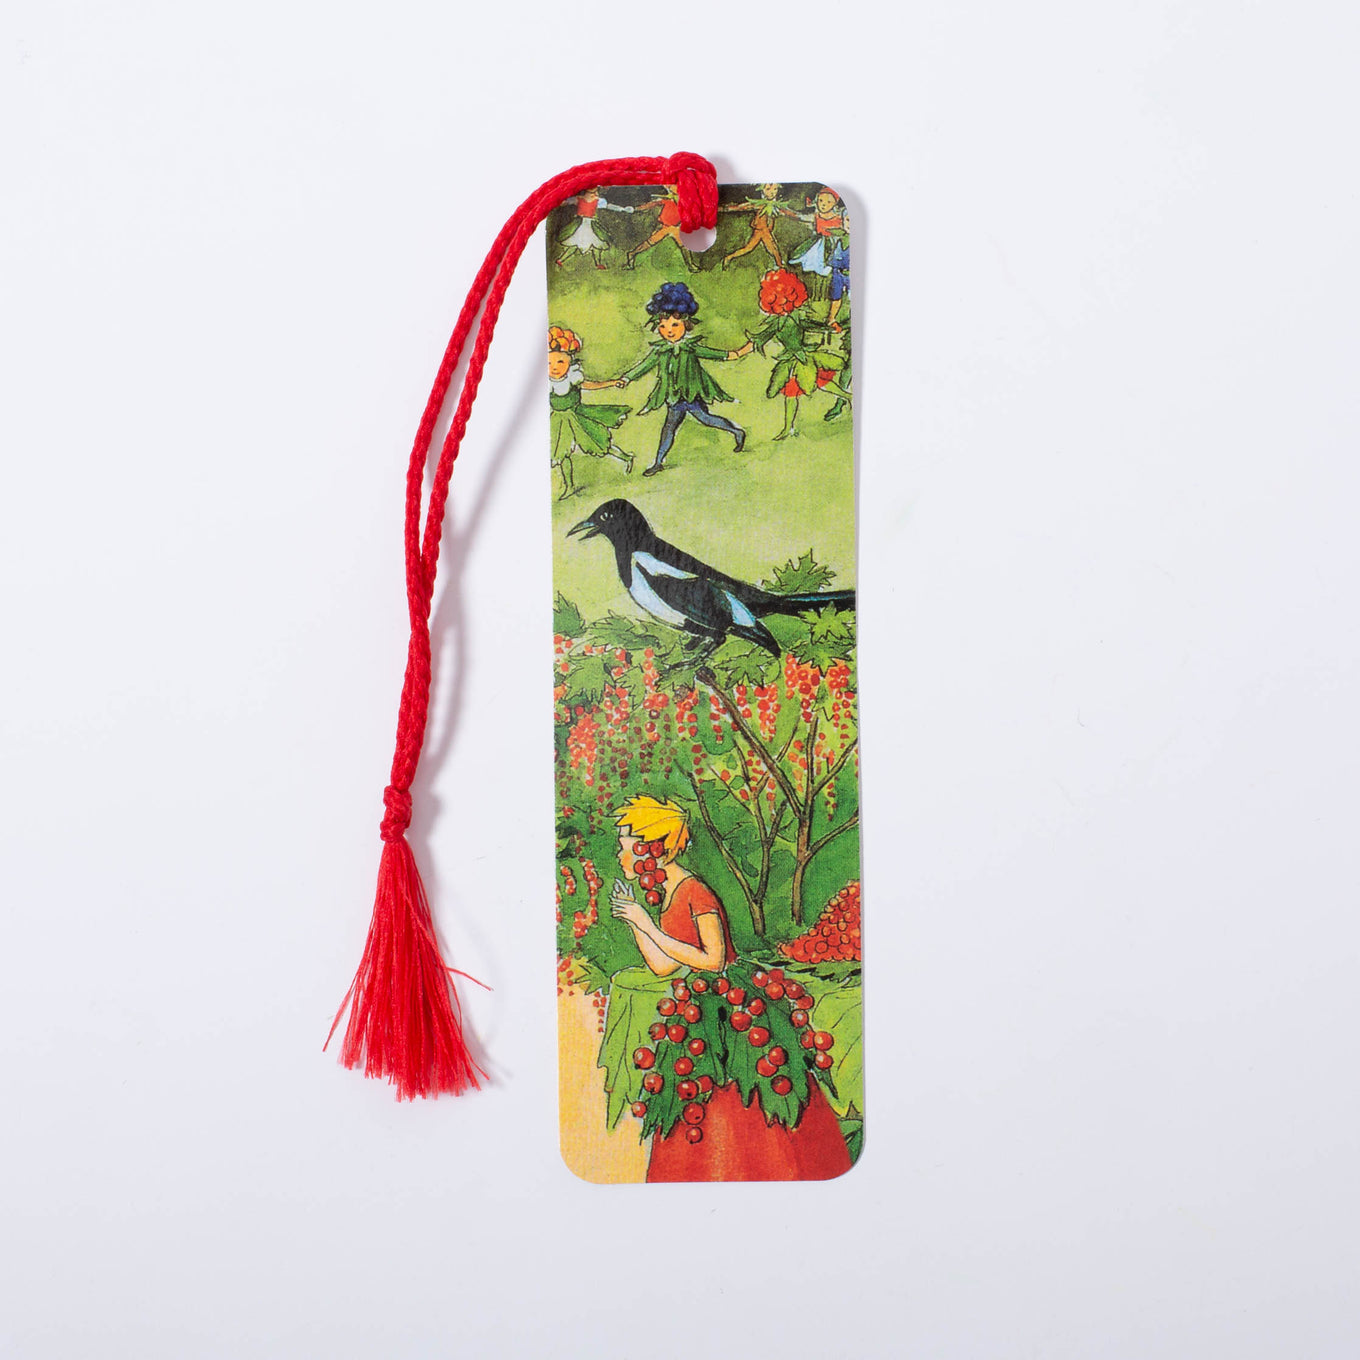 Elsa Beskow Bookmark | August